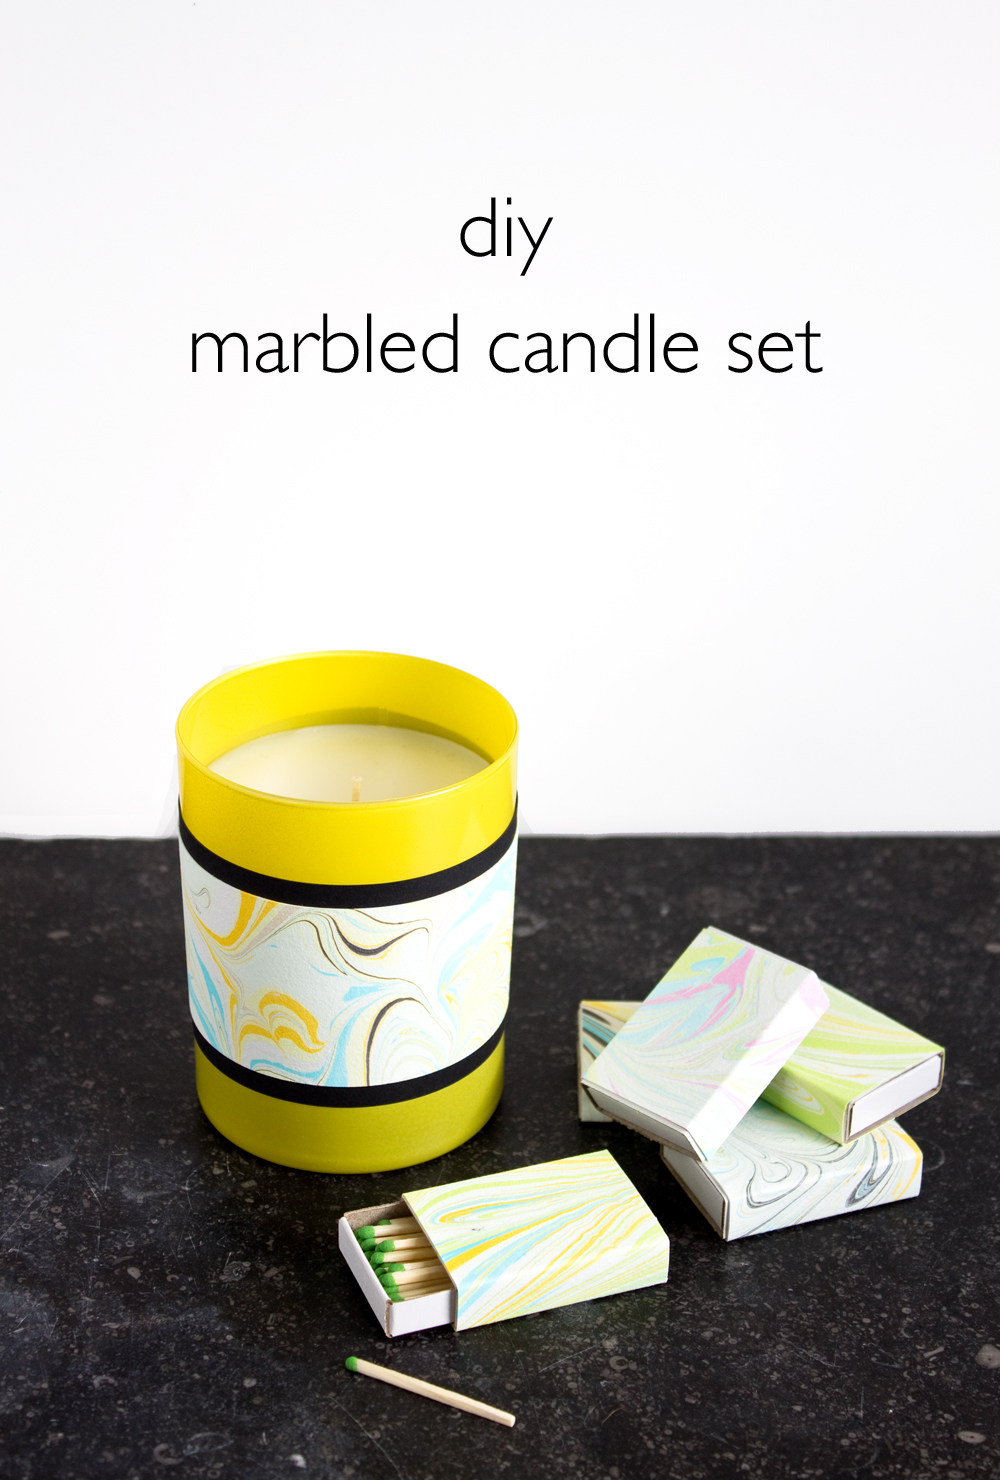 DIY Marbled Candle Set | www.vitaminihandmade.com